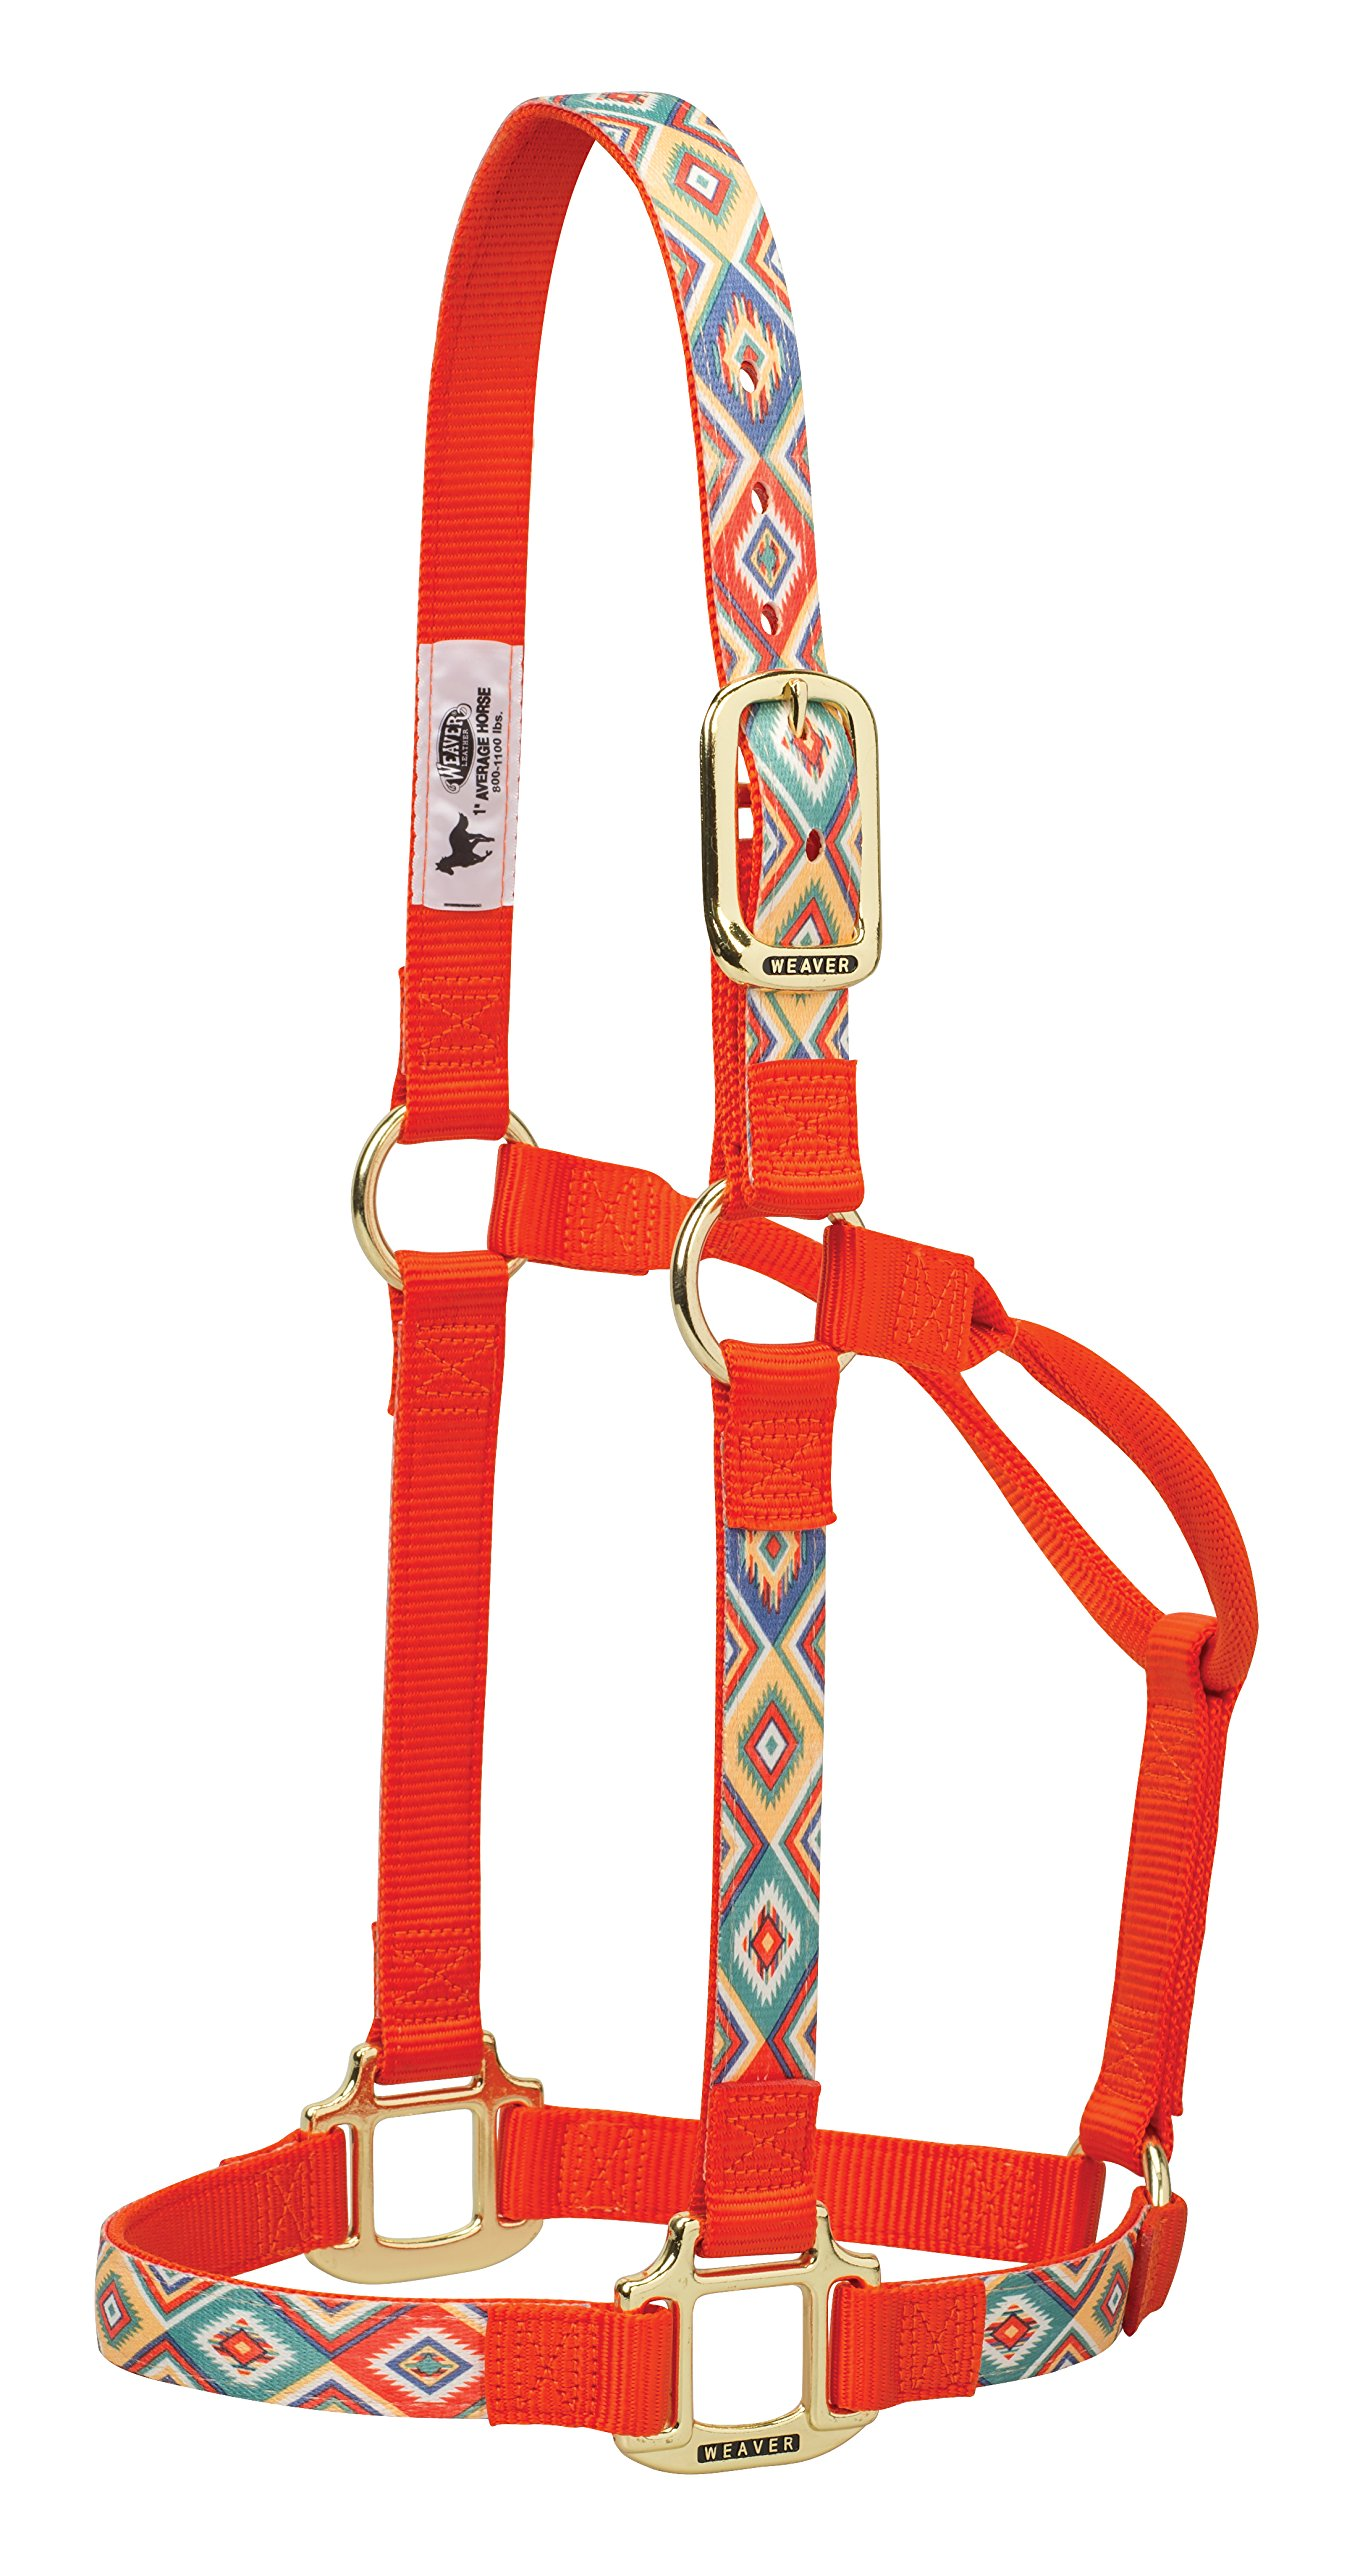 Weaver Leather Patterned Non-Adjustable Halters